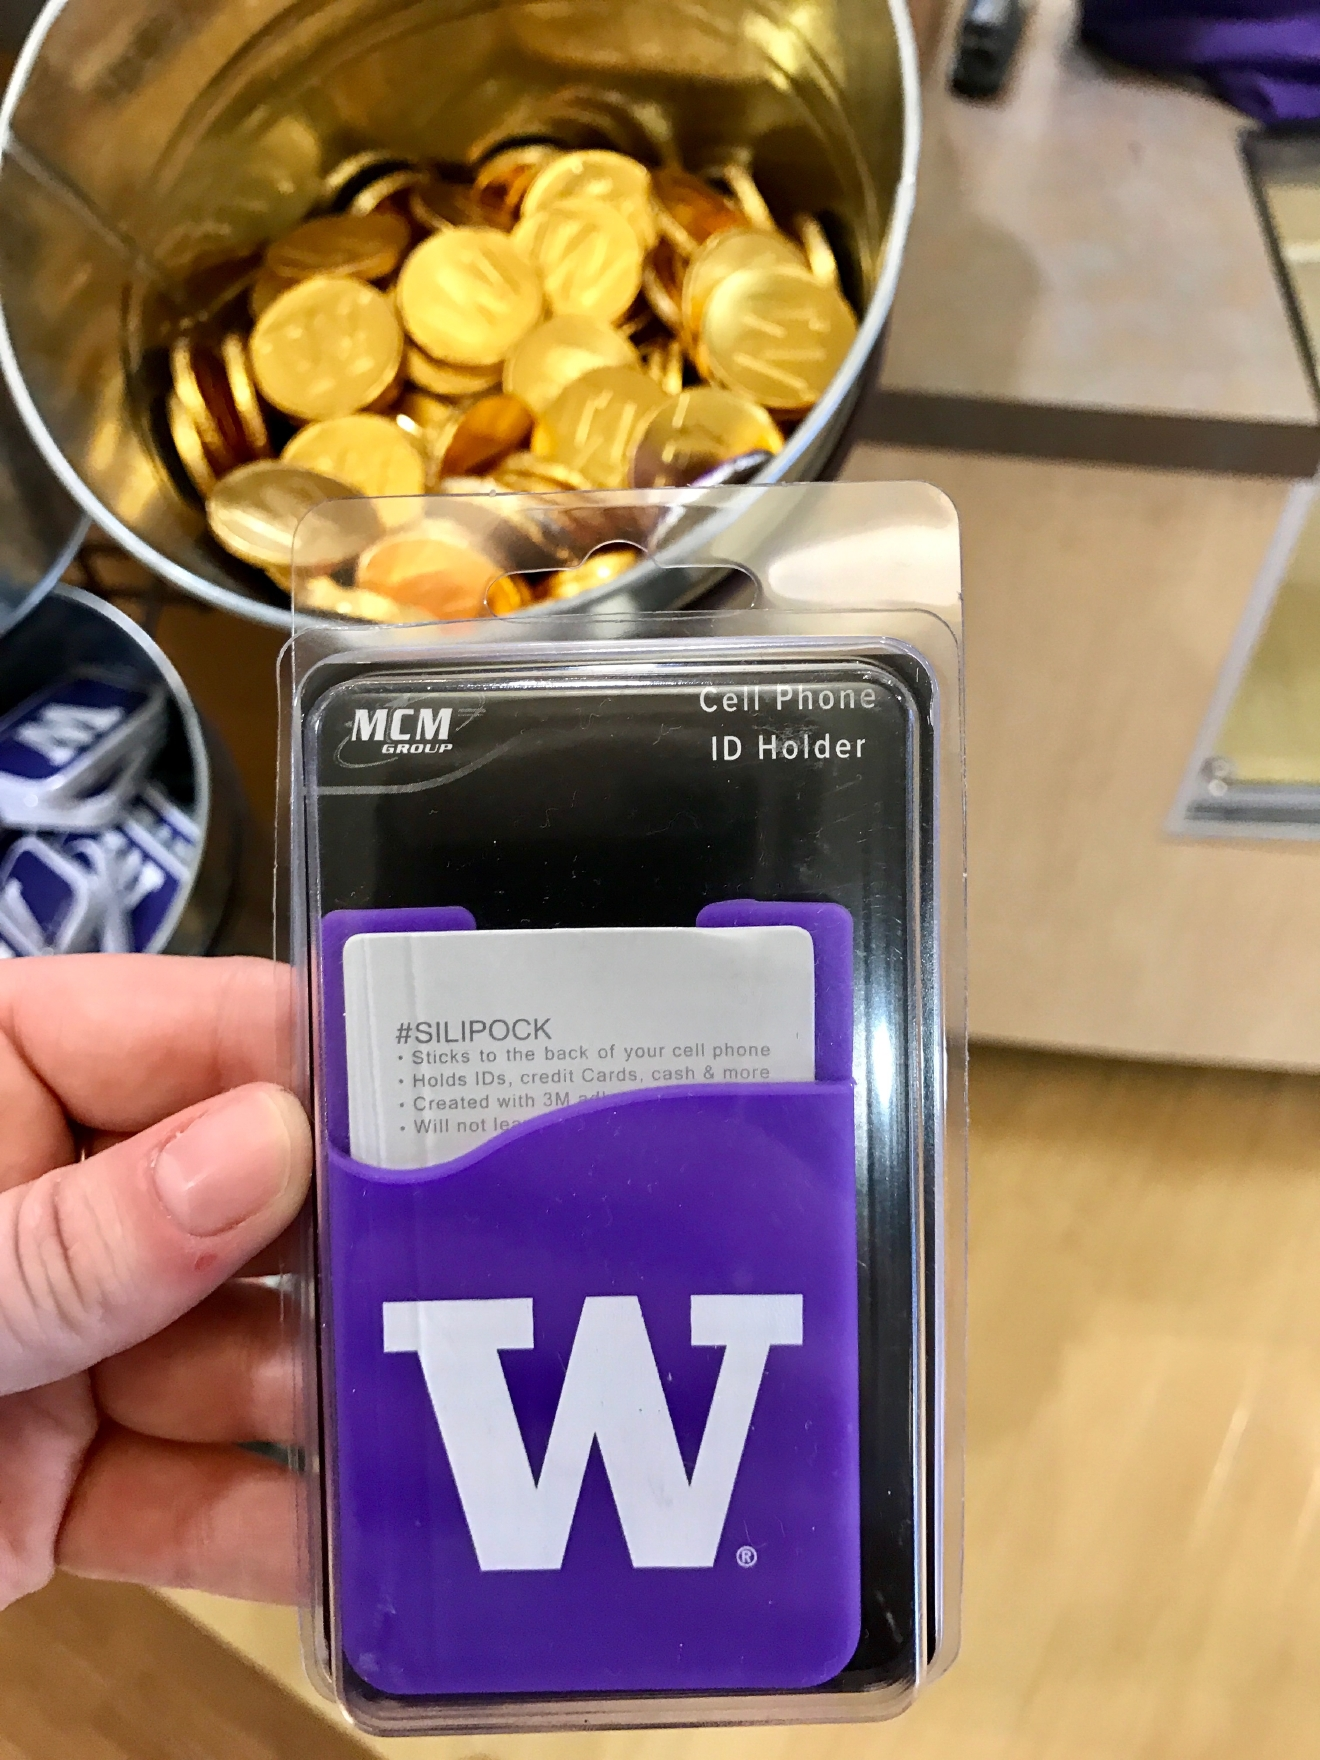 UW Credit Card Phone Case - $3.95                                          Whether you're a current student, alum, or just *love* the Dawgs, it's a pretty exciting time to be a Husky fan right now. Just to catch you up, the University of Washington football team is having one of their best seasons in years, and will be playing the Peach Bowl in Atlanta on December 31st. If you know a Dawg fan, they're probably salivating at the mouth right about now. Which is why it's a perfect time to give them a themed gift! Here are some of the coolest Husky gear we saw at the University Bookstore on the Avenue during our last visit. Pro Tip: They're open 10 a.m. - 7 p.m. on Christmas Eve! (Image: Britt Thorson / Seattle Refined)